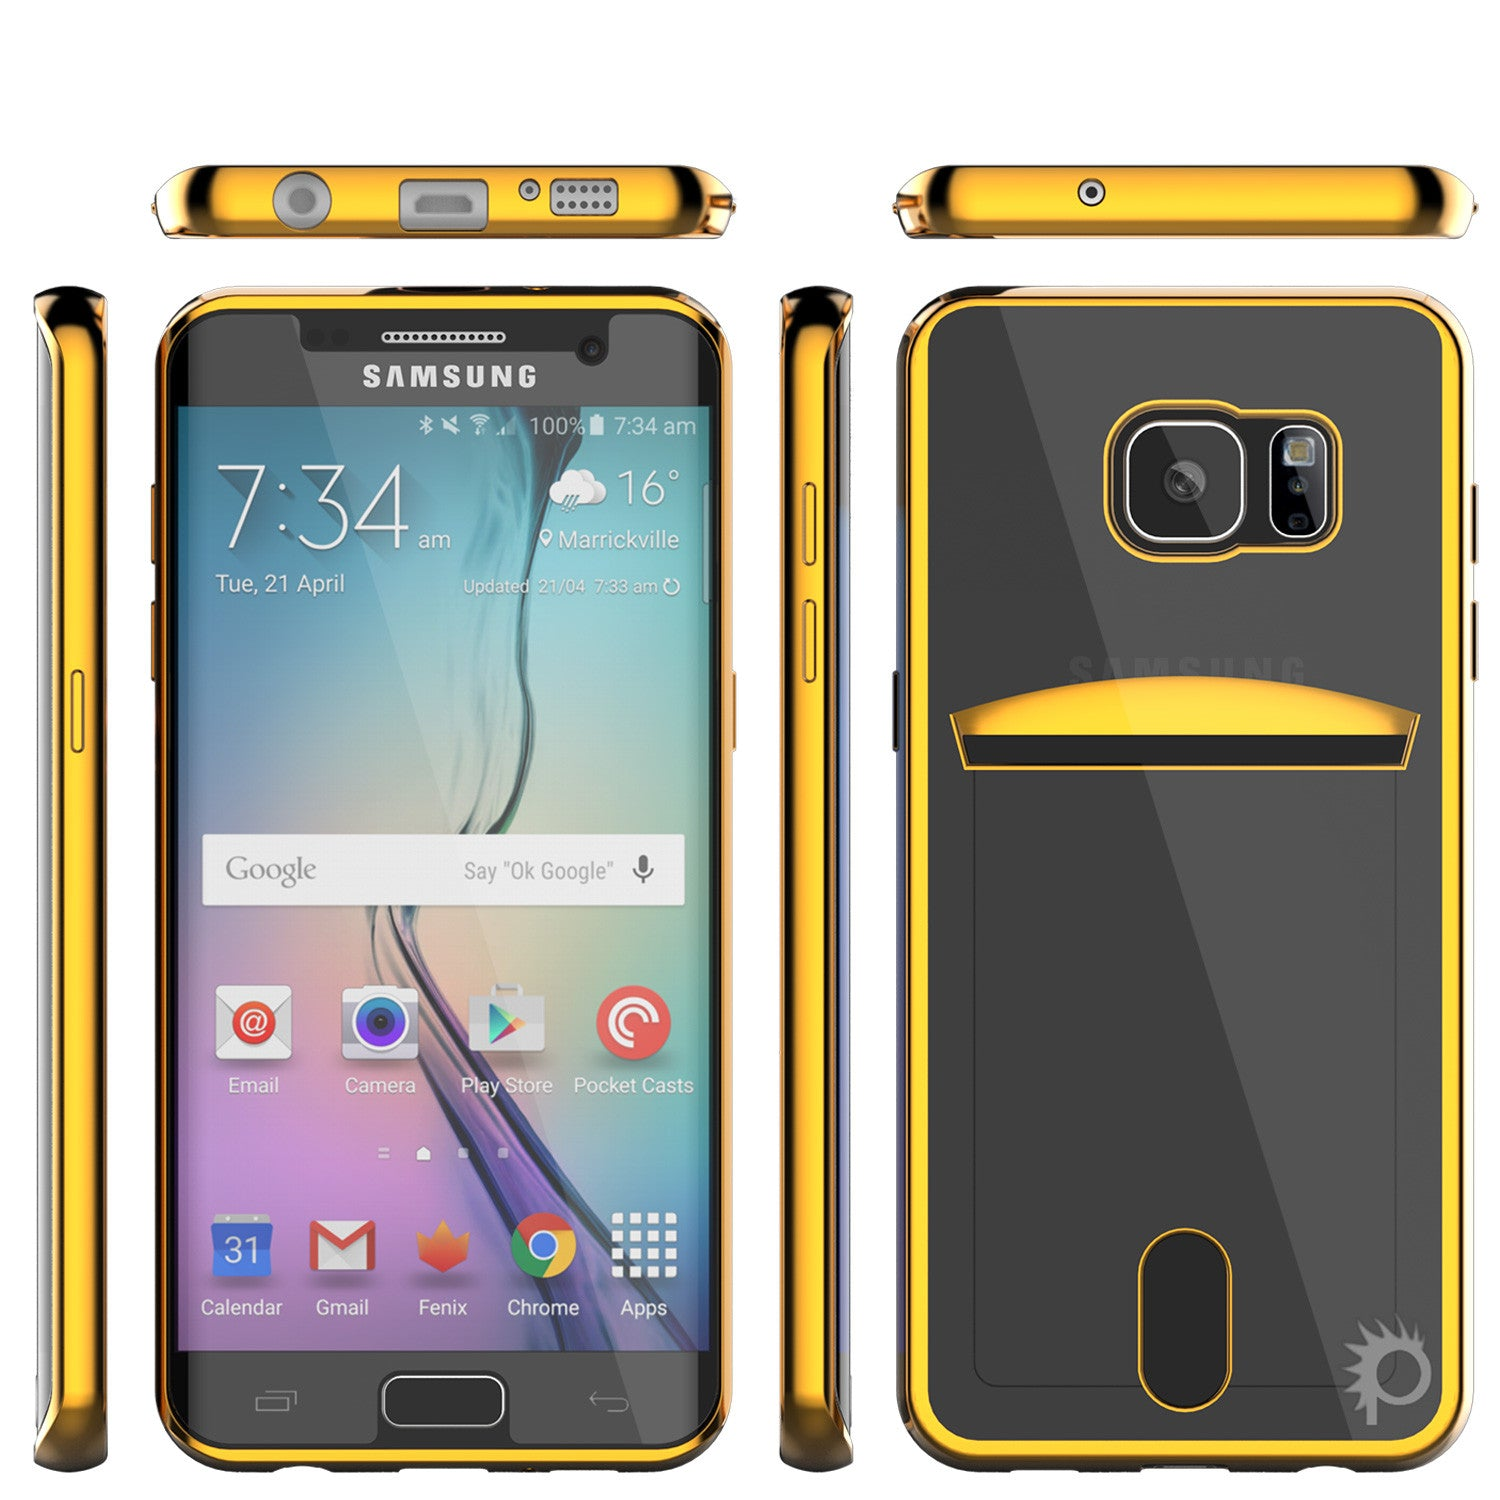 Galaxy S6 Case, PUNKCASE® LUCID Gold Series | Card Slot | SHIELD Screen Protector | Ultra fit